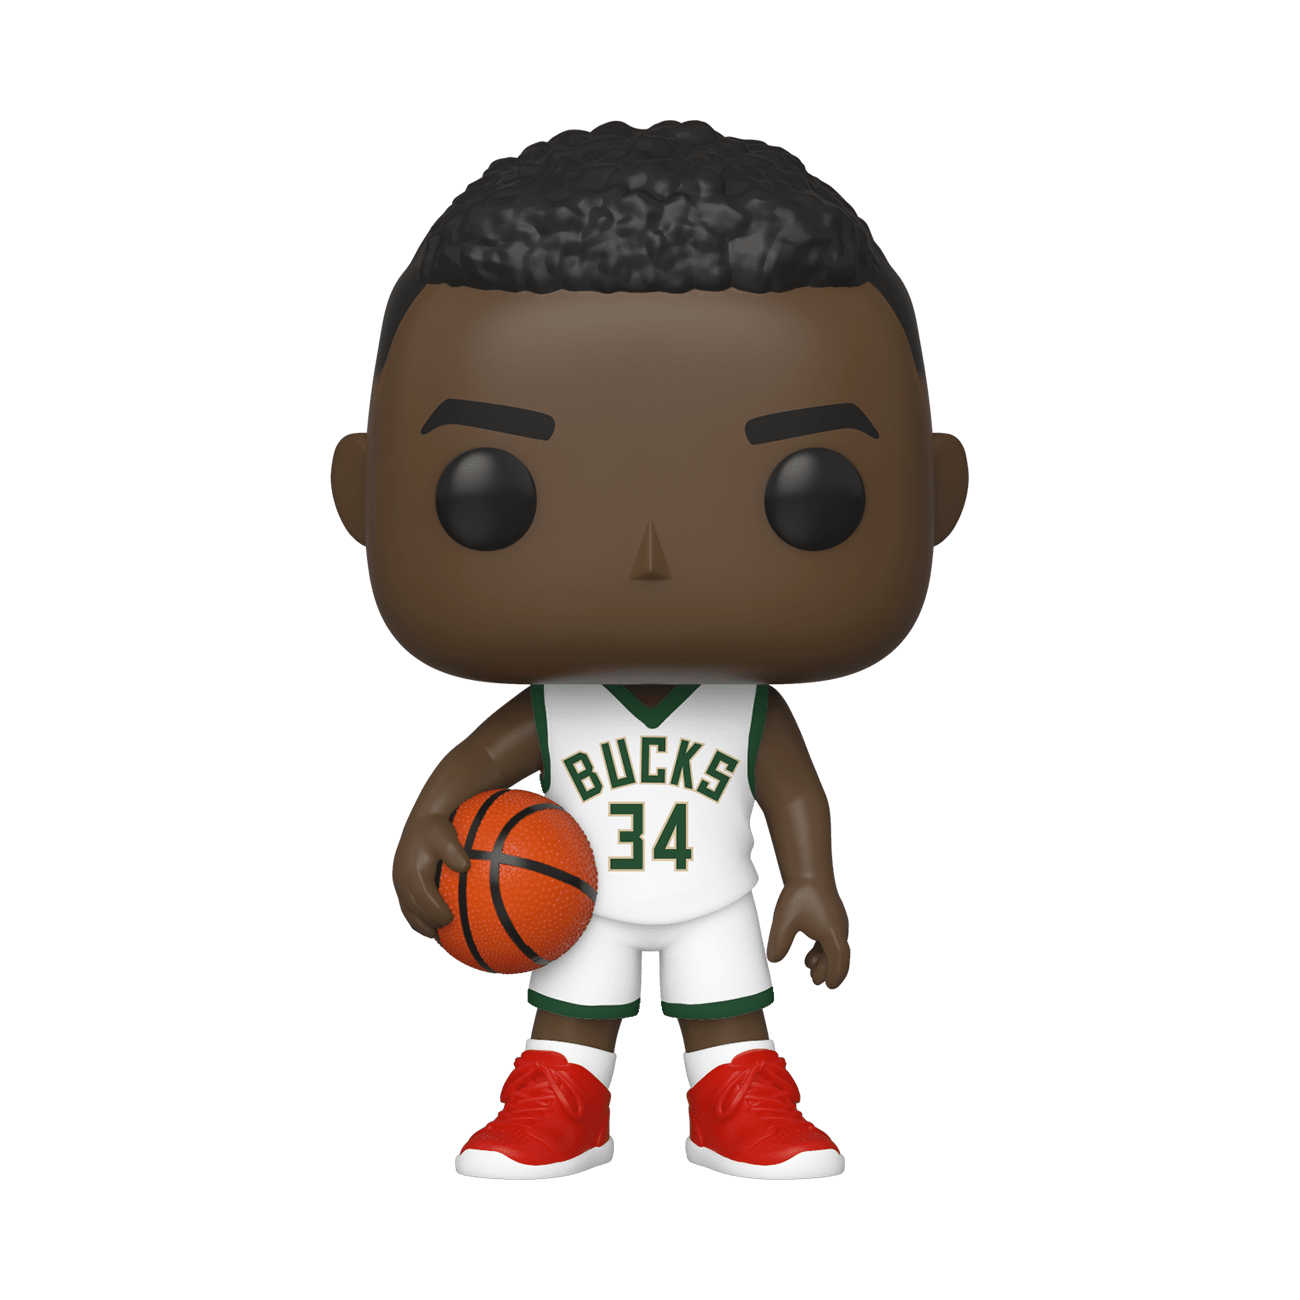 NBA: Bucks Giannis Antetokounmpo POP! Vinyl Figure